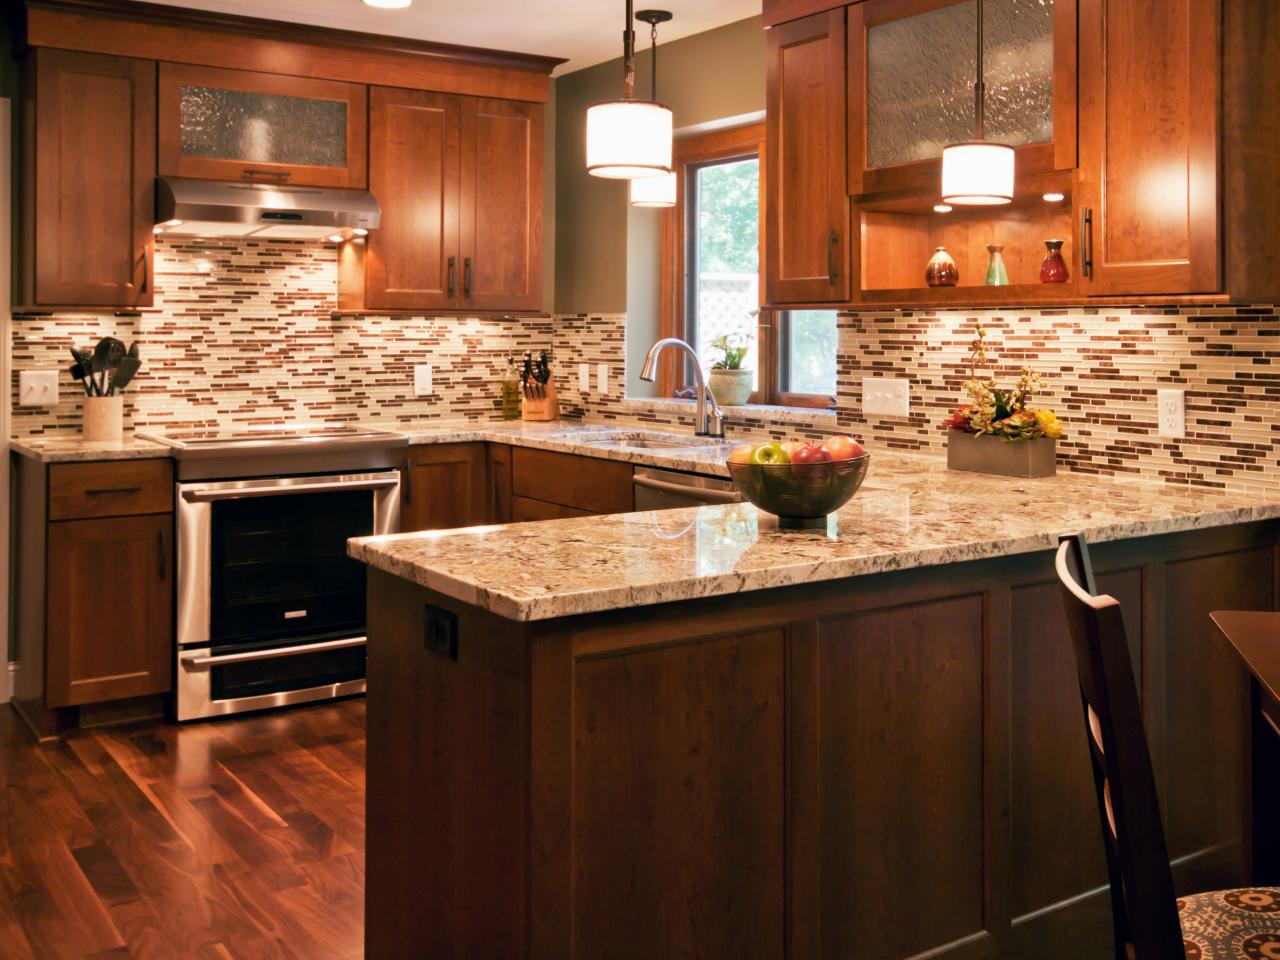 Featured Image of The Types Of Tiles On Mosaic Ideas For Kitchen